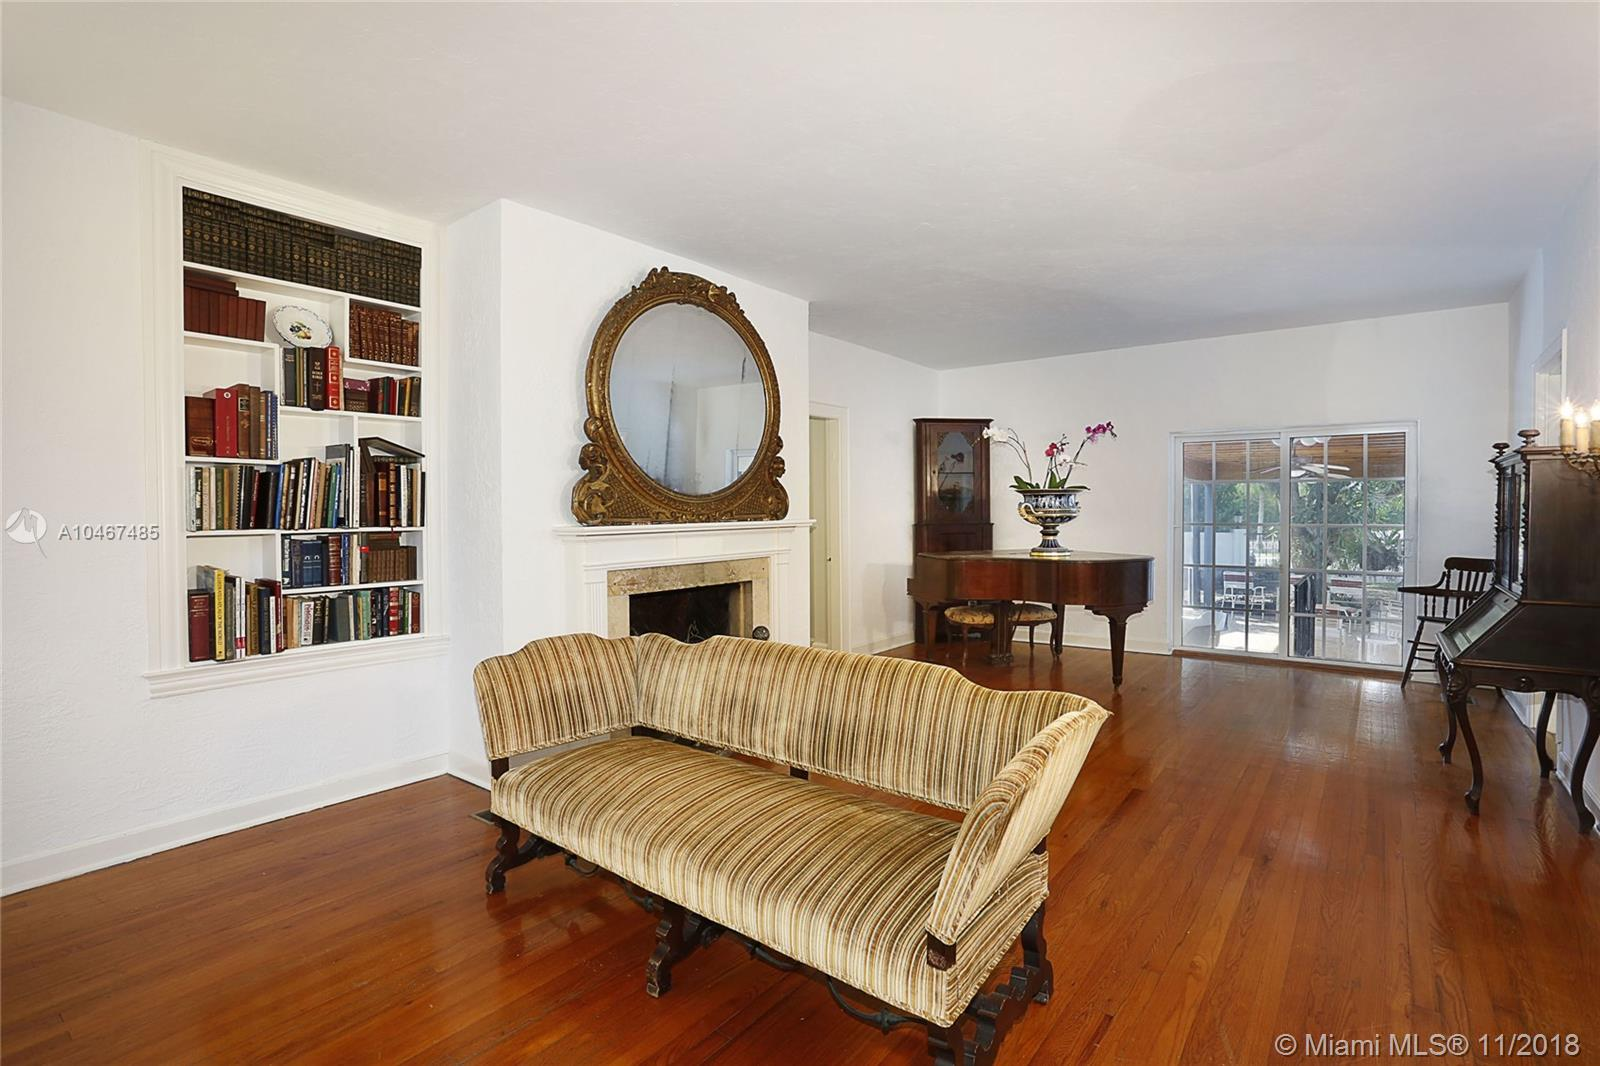 Reduced Again! Don'T Miss It! Give Your Family An End Of Year Gift! All Resanoble Offers Will Be Reviewed! Located On Large 13, 500 Sf Lot That Is Walled And Gated With Frontage On Two Prestigious Streets In The South Gables. This Home Has An Actual Area Of Approximate 6, 000 Sf As A Family Compound With A Total Of 8 Bed, 5.5 Baths. The Main House Includes An In-Law+Ógé¼Gäós Suite With Full Kitchen And Private Entrance In Addition To A Maid+Ógé¼Gäós Quarter And 4 Other Bedrooms. Also An Additional Structure On The Property Includes A 2 Story Guest House With 2 Bedrooms And A Fully Equipped Kitchen. A 2 Car Garage With Easy Access Straight From Le Jeune And A Primary Entrance On Quiet San Vicente. Ready For Move-In Or Available For Design/Build Services Available With Luxury Builder Oxford Universal.